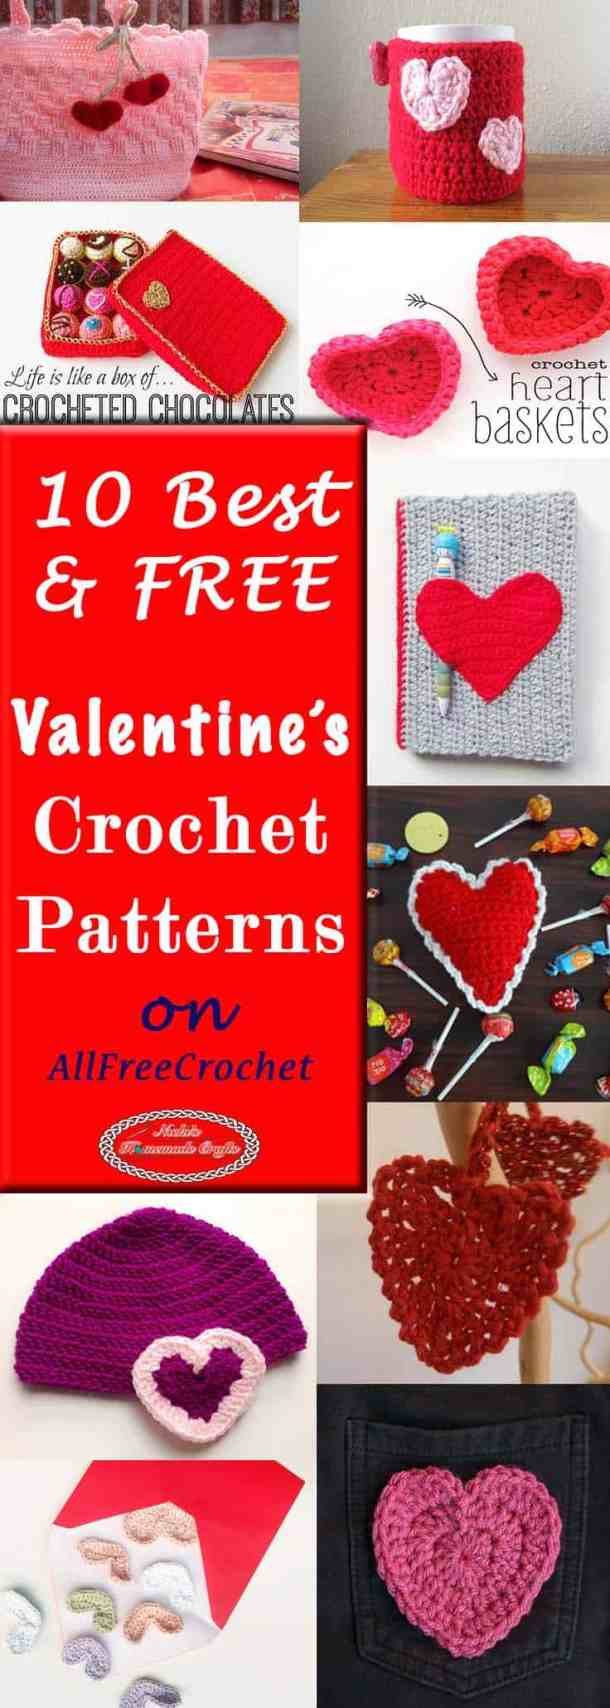 10 Best Free Valentine's Crochet Pattern on AllFreeCrochet by Nicki's Homemade Crafts #free #crochet #pattern #diyroomdecor #diy #room #decor #collection #Valentine #day #hearts #gifts #presents #quick #easy #AllFreeCrochet